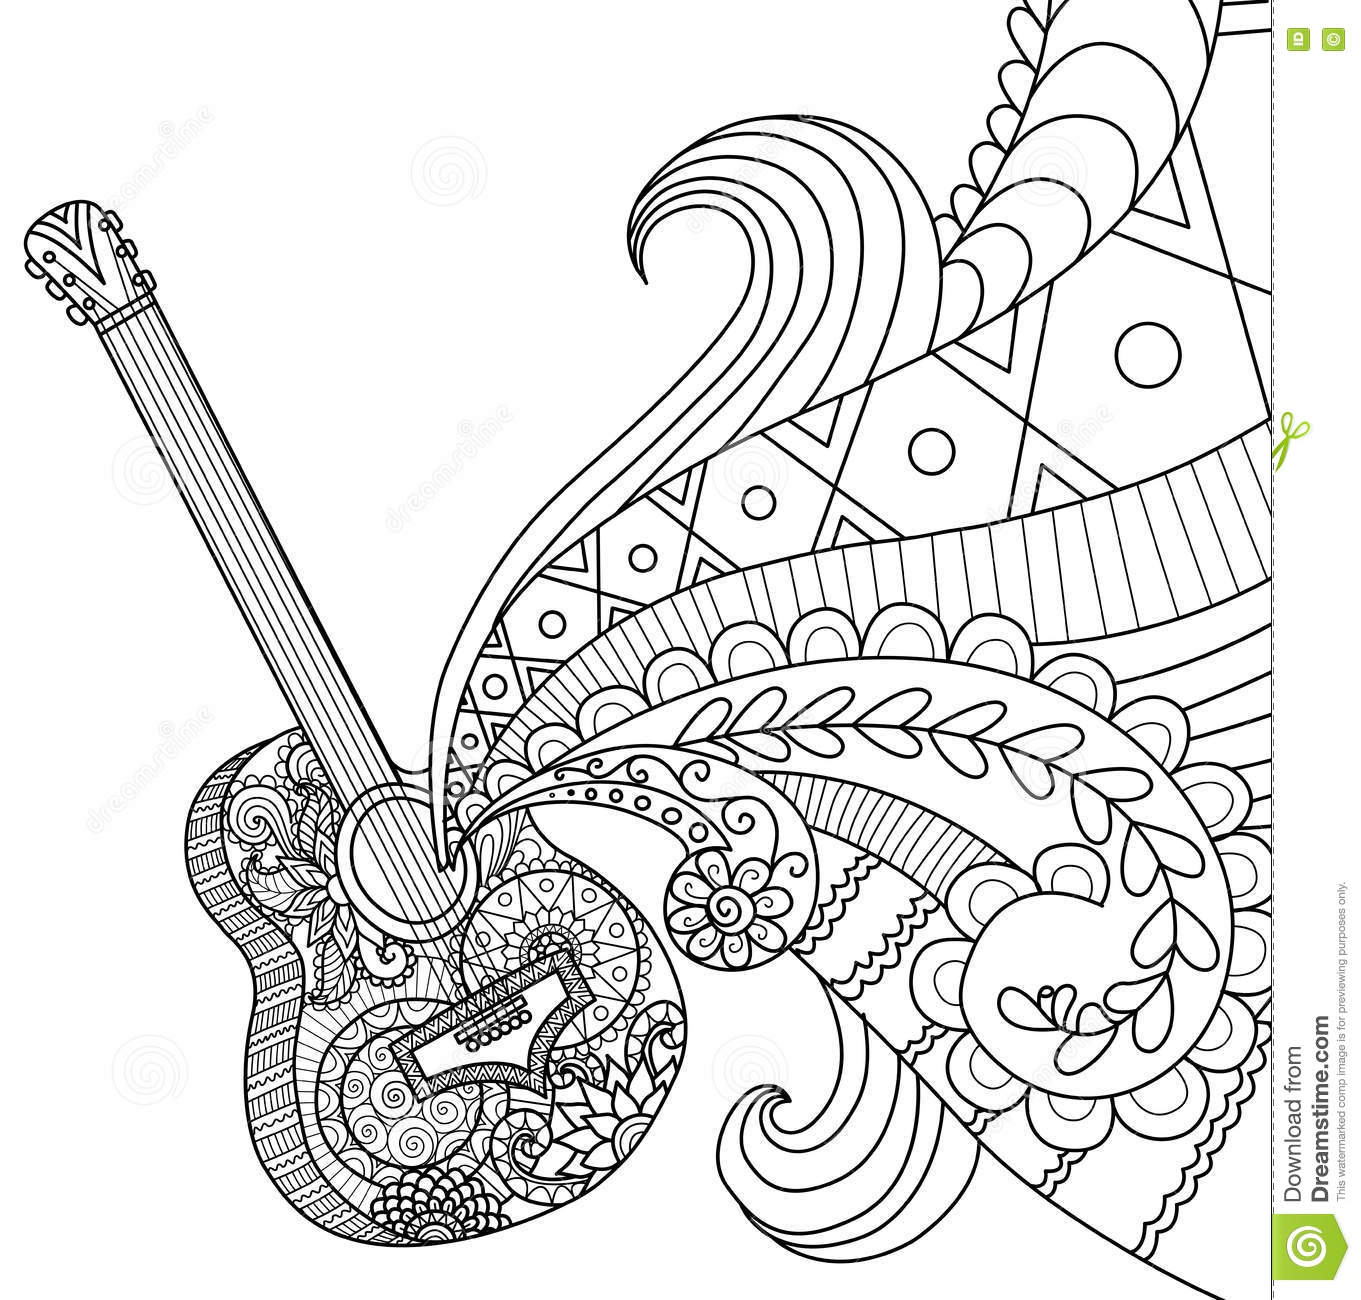 coloring page guitar guitar coloring pages to download and print for free page coloring guitar